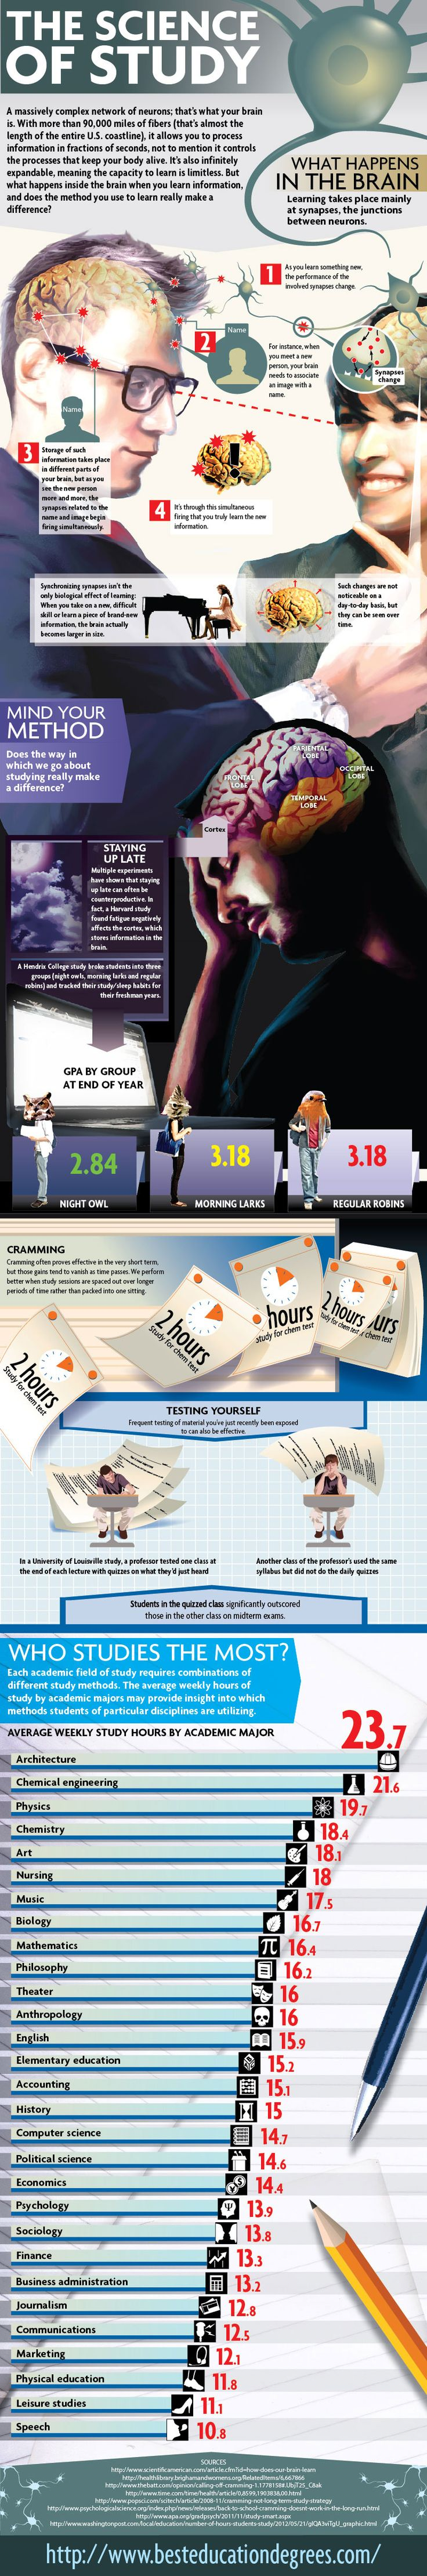 The Science of Study (Infographic) - Fluency21 - Committed Sardine Blog